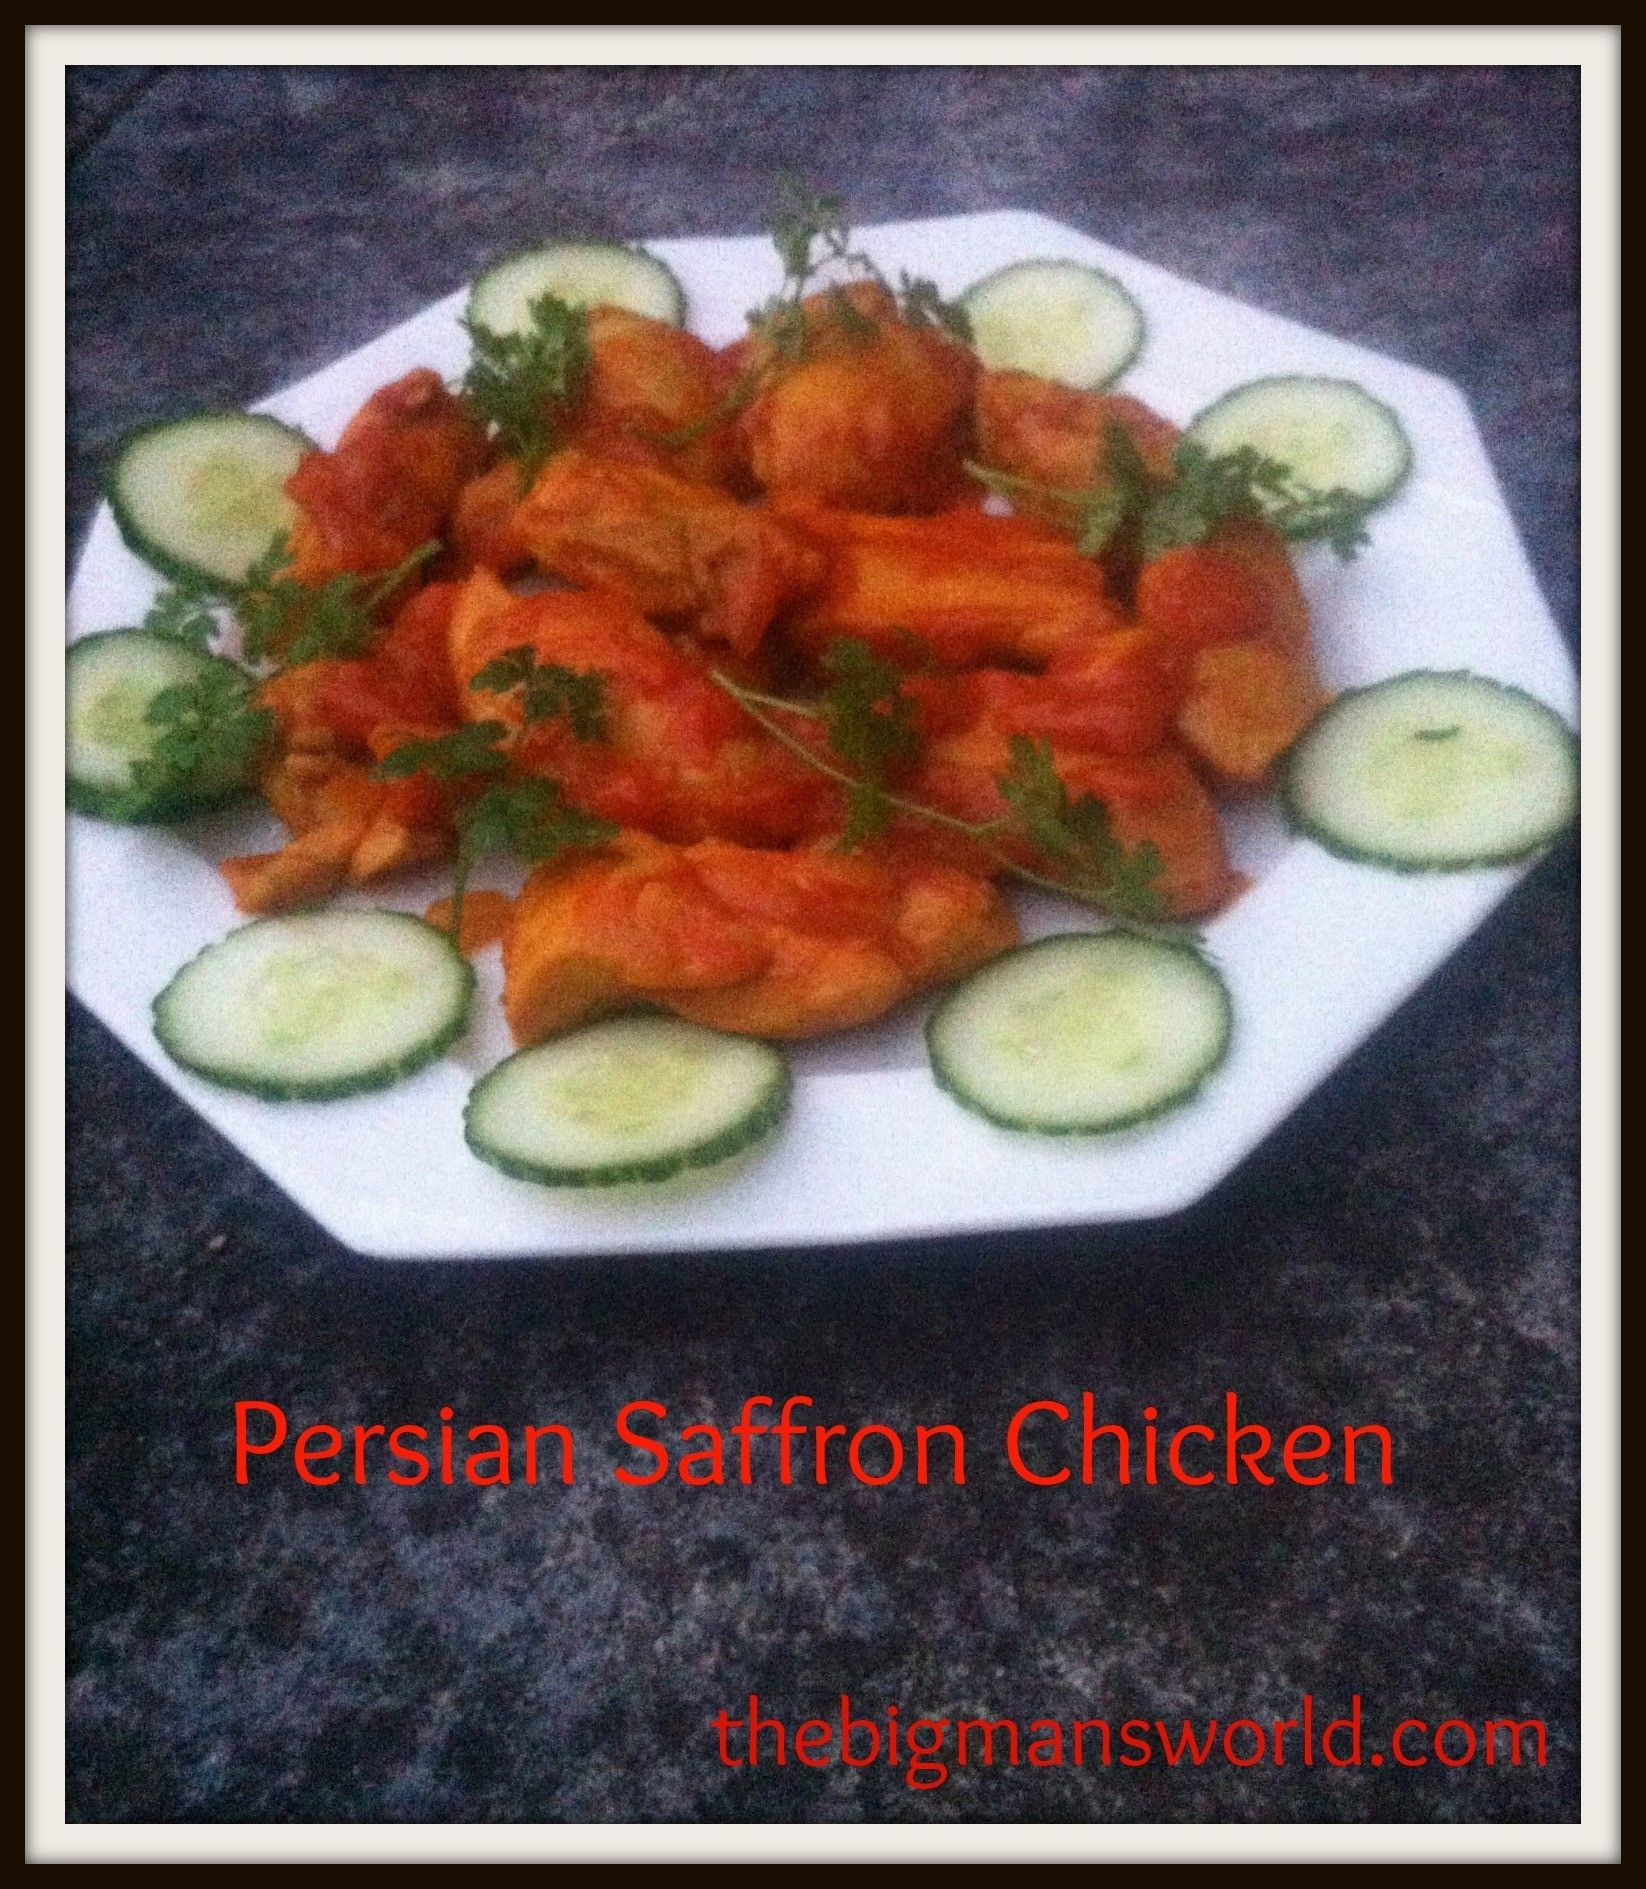 Chicken 65 healthy food kitchen - From My Mum S Kitchen To Yours Her Infamous Persian Saffron Chicken Recipe So Simple